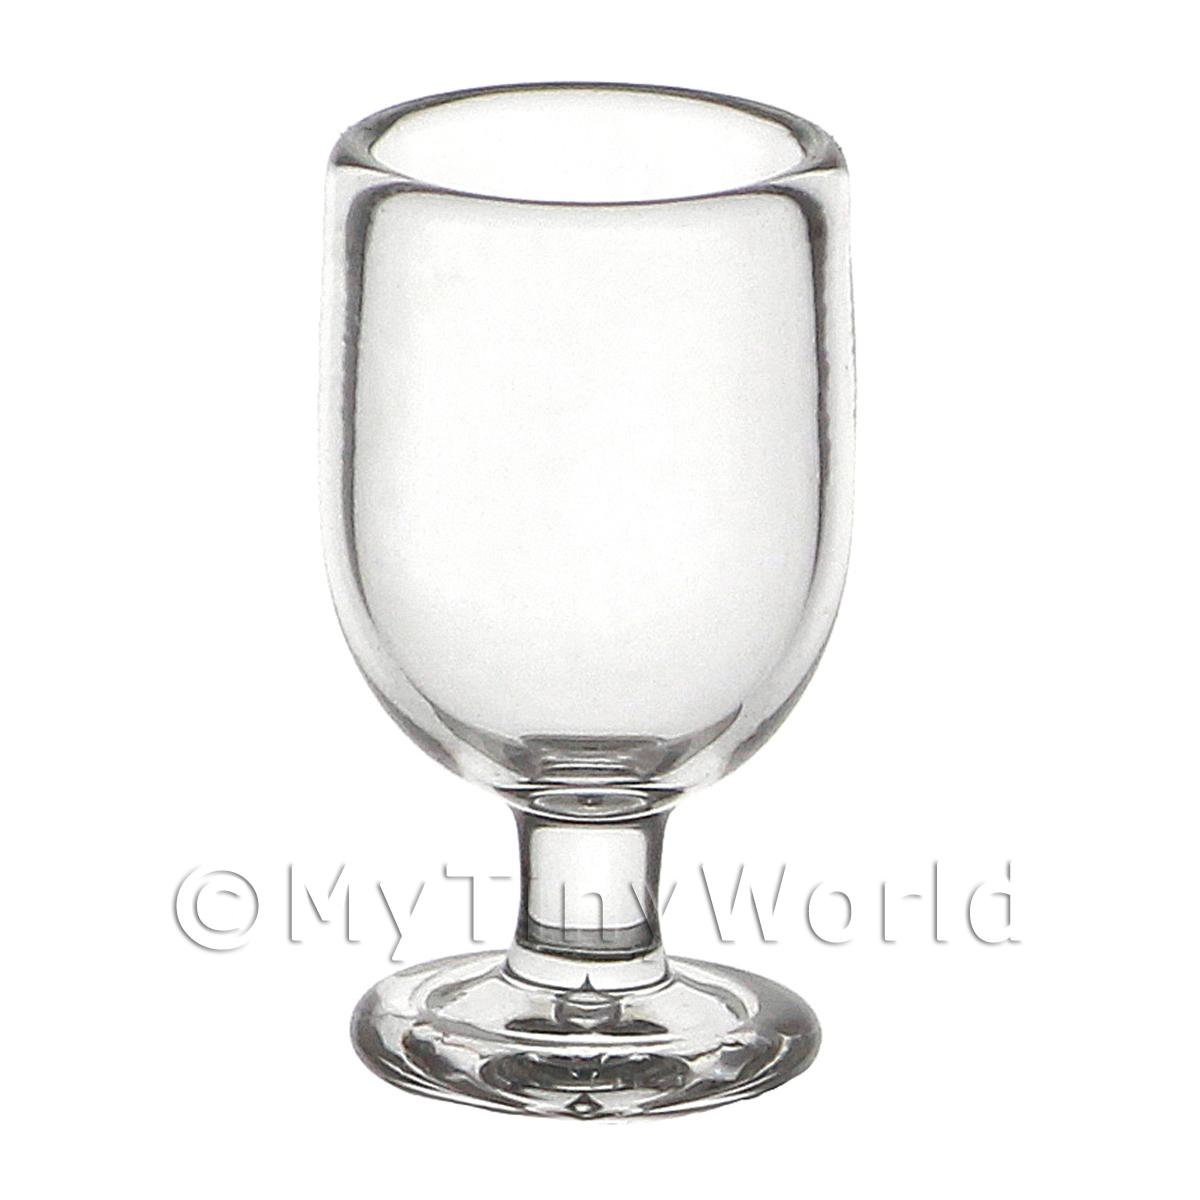 Dolls House Miniature Glassware Dolls House Miniature Handmade Clear Short Stemmed Wine Glass